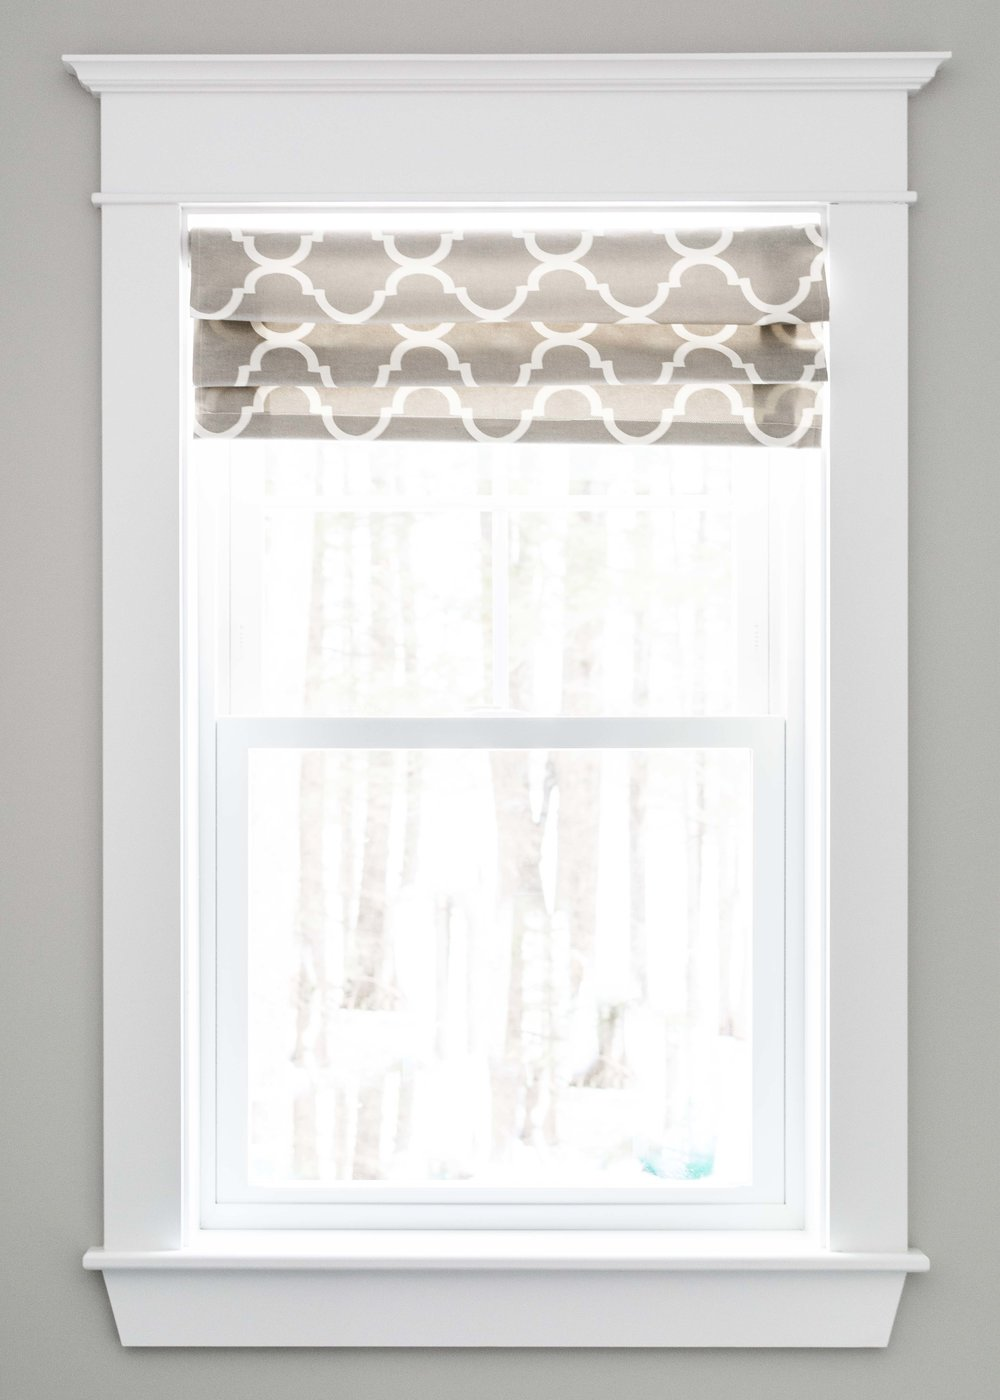 Birchwood Farmhouse, Gorham, Maine, Window Trim Detail